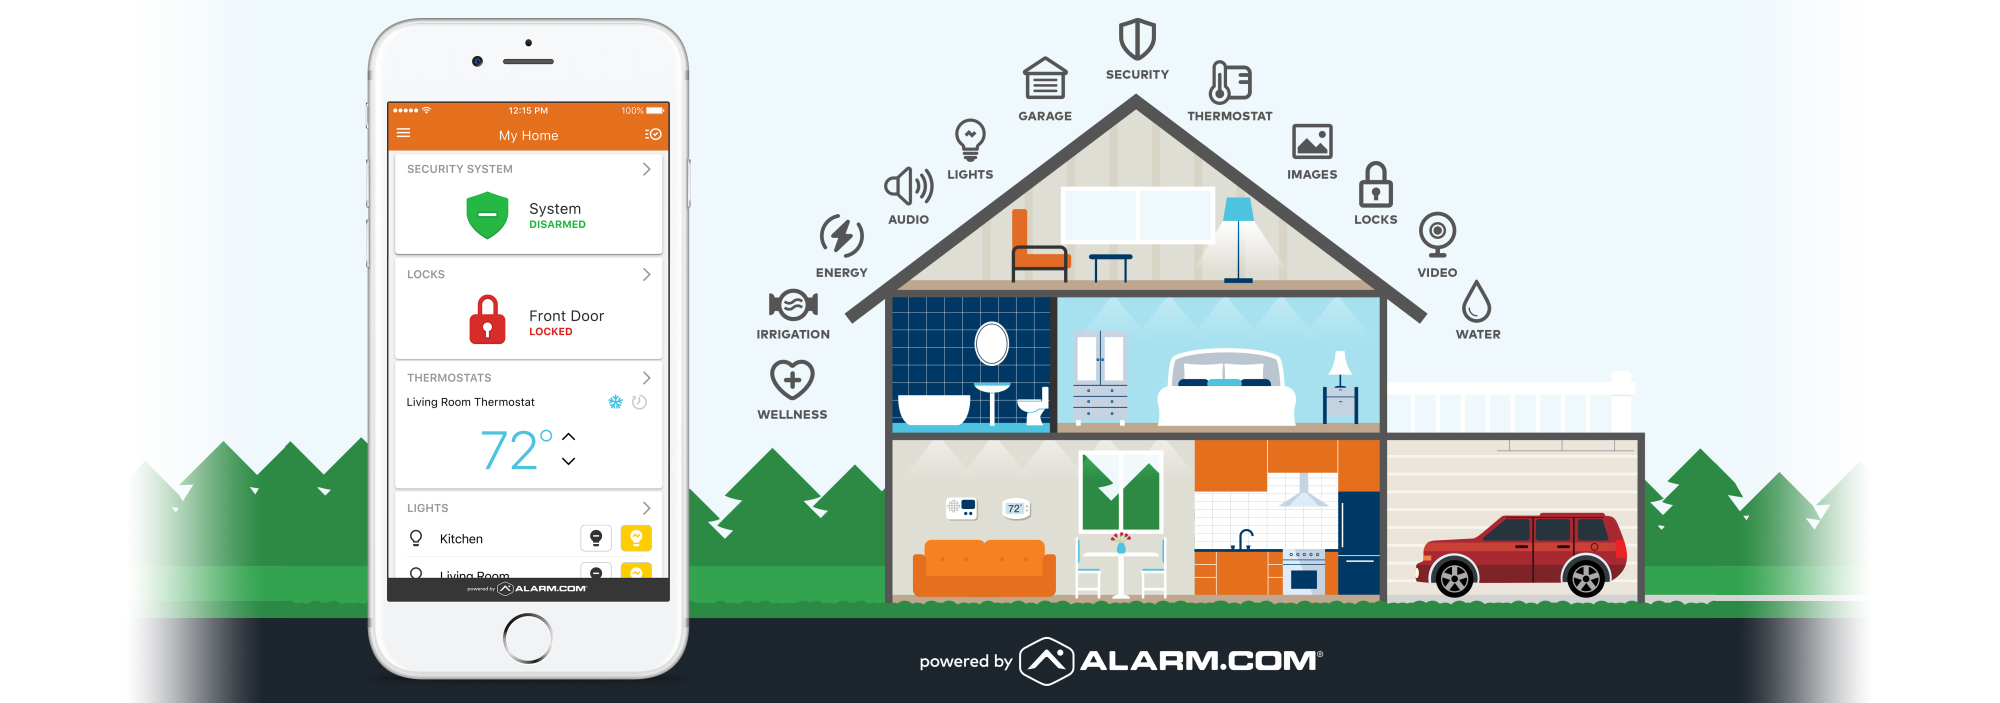 an image showing how the alarm.com app can help you secure your home